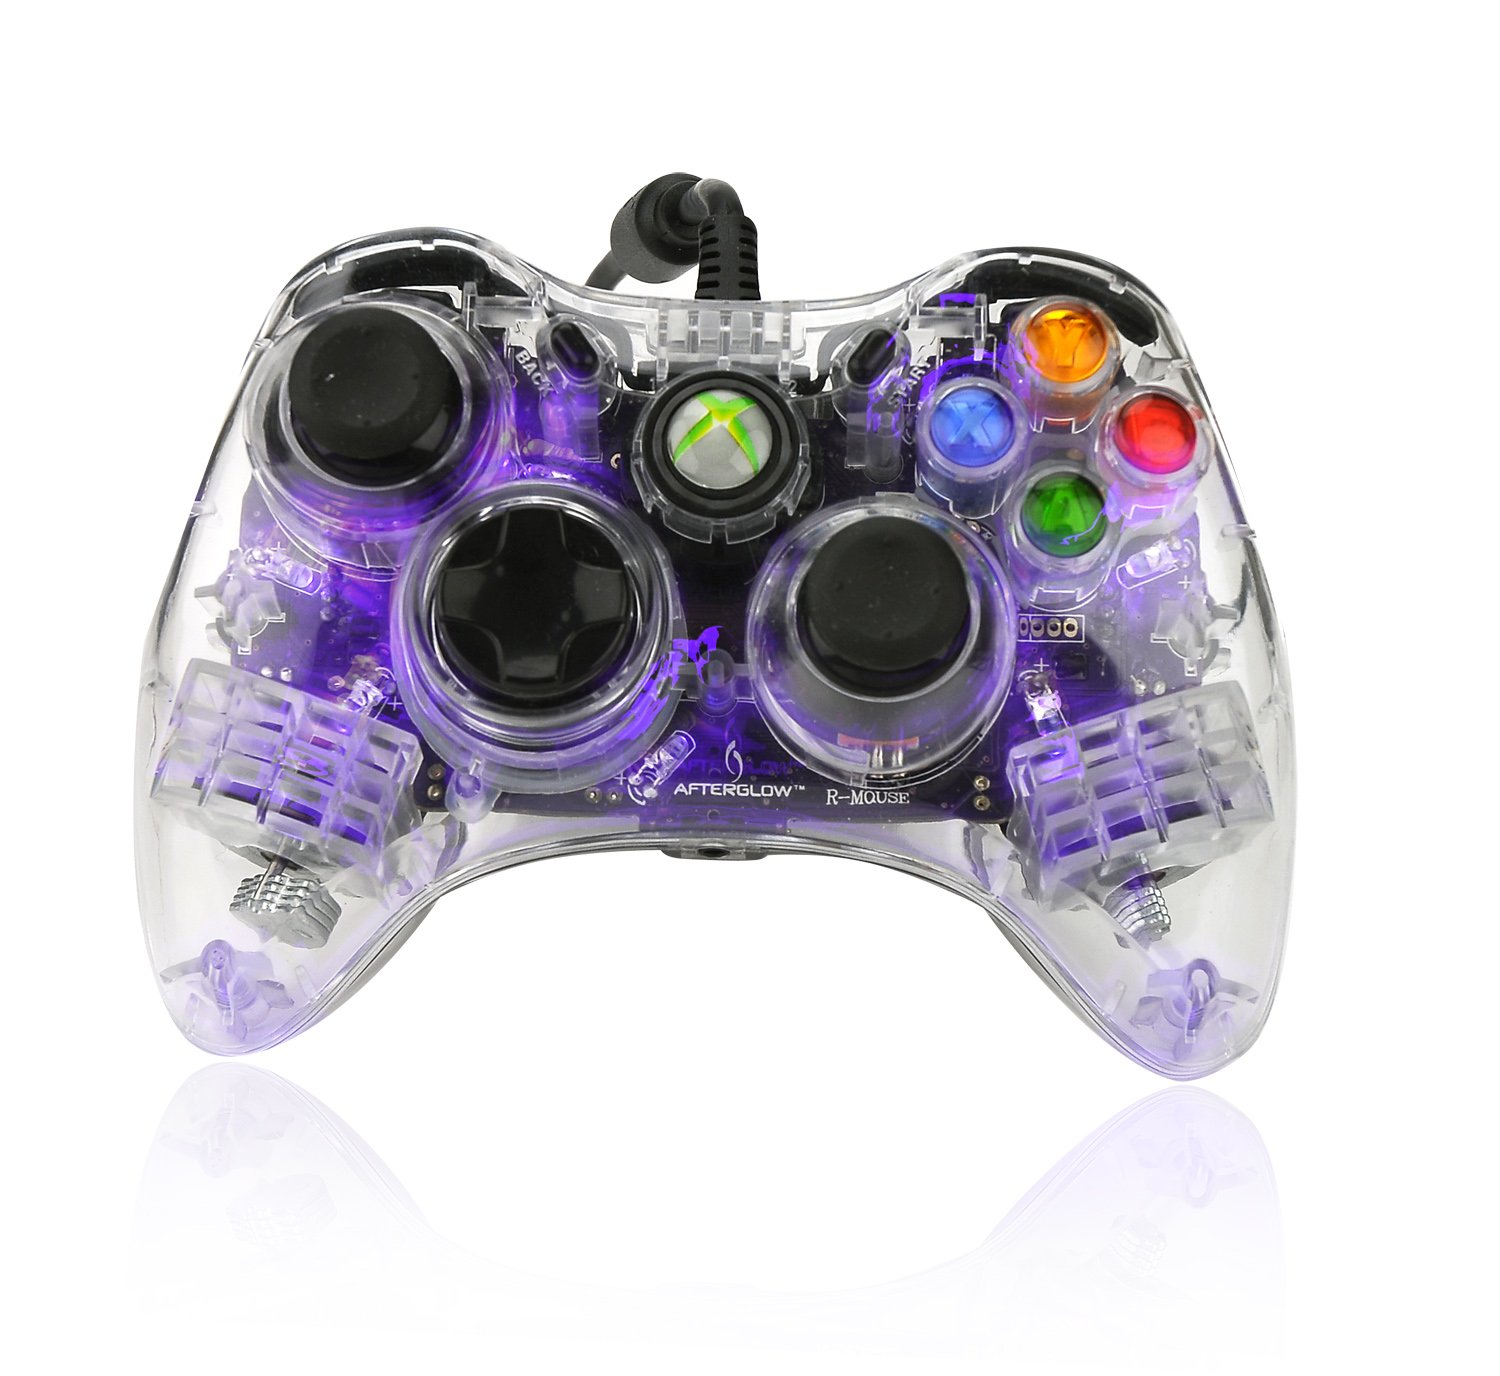 Afterglow ps3 controller driver - Mining dvd